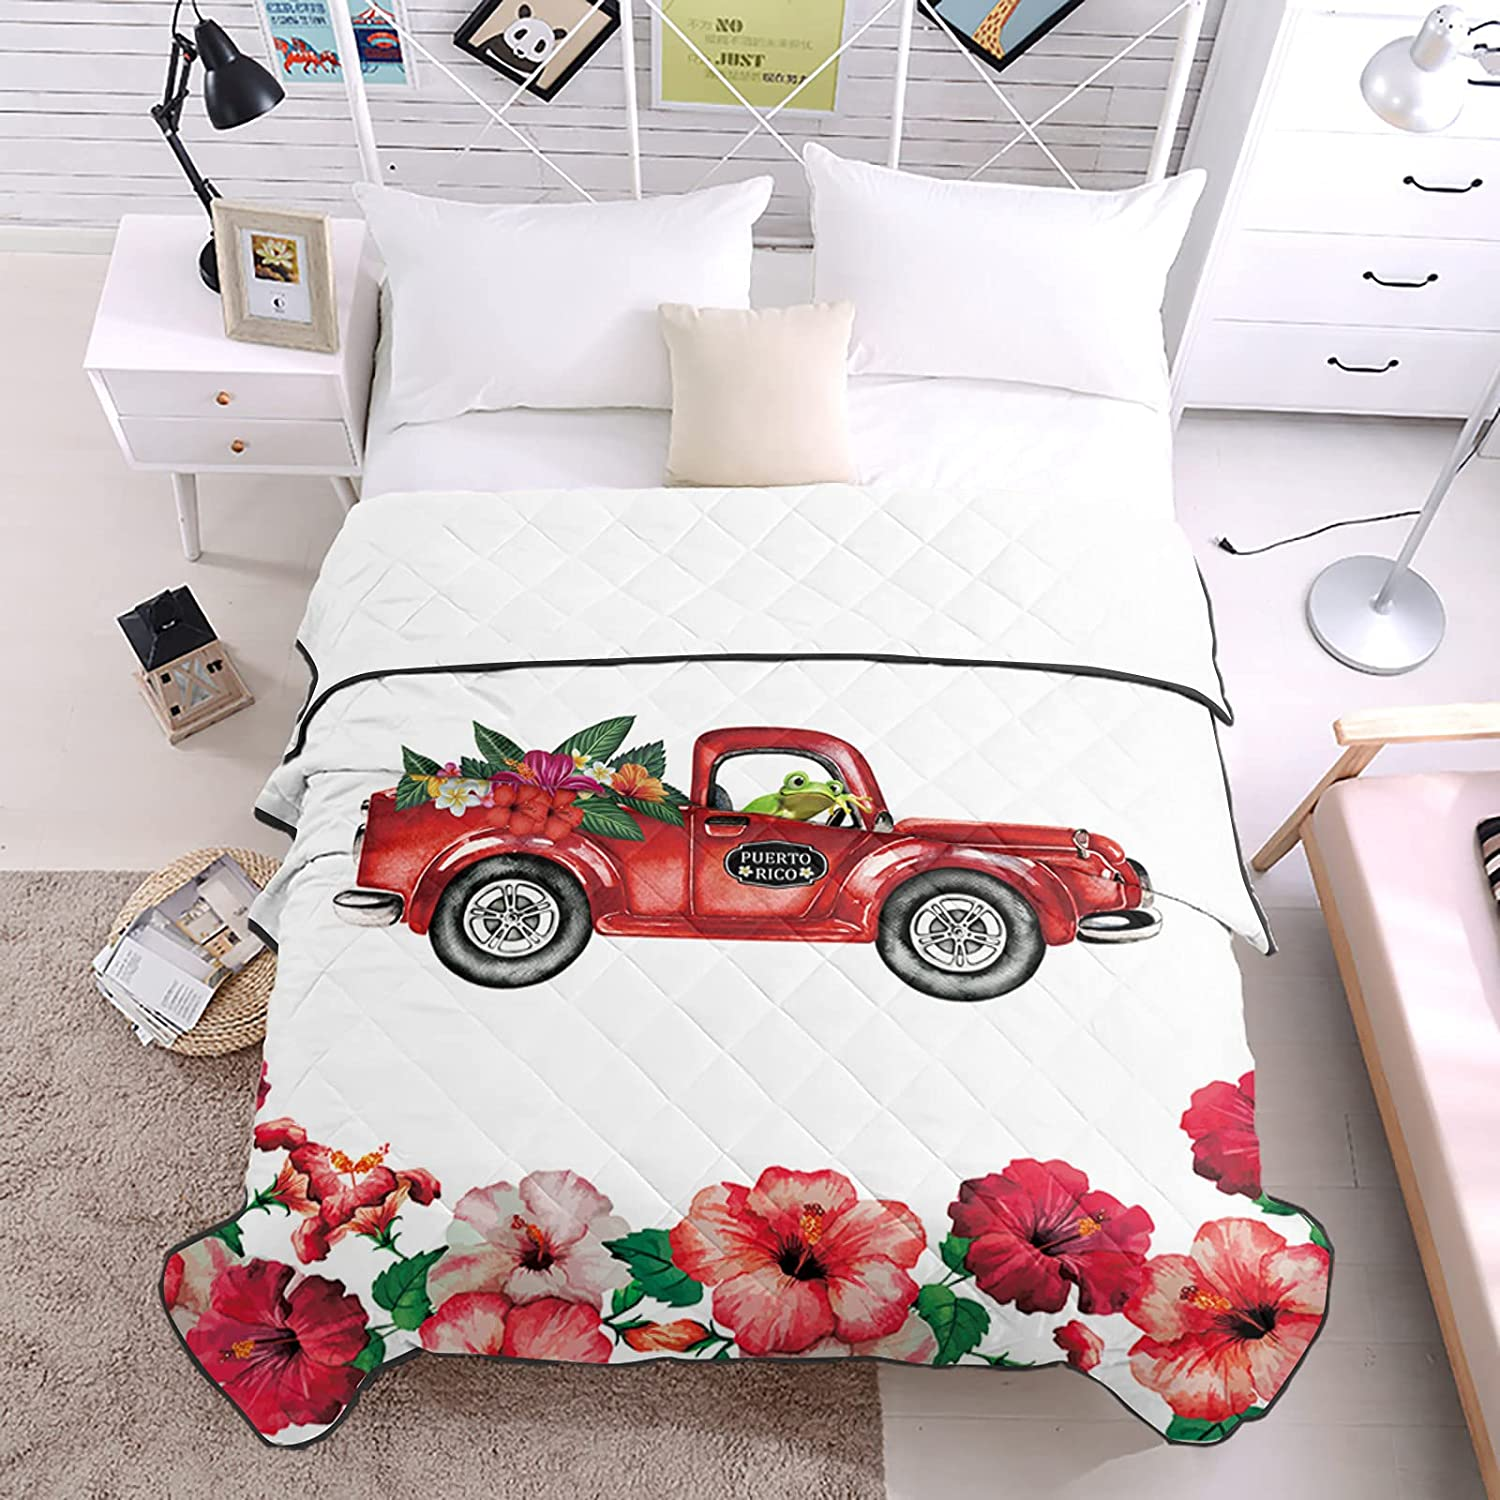 DecorLovee Bedding Duvets Max 74% OFF Freedom Puerto Rico Trucks Drive Frog Outlet sale feature